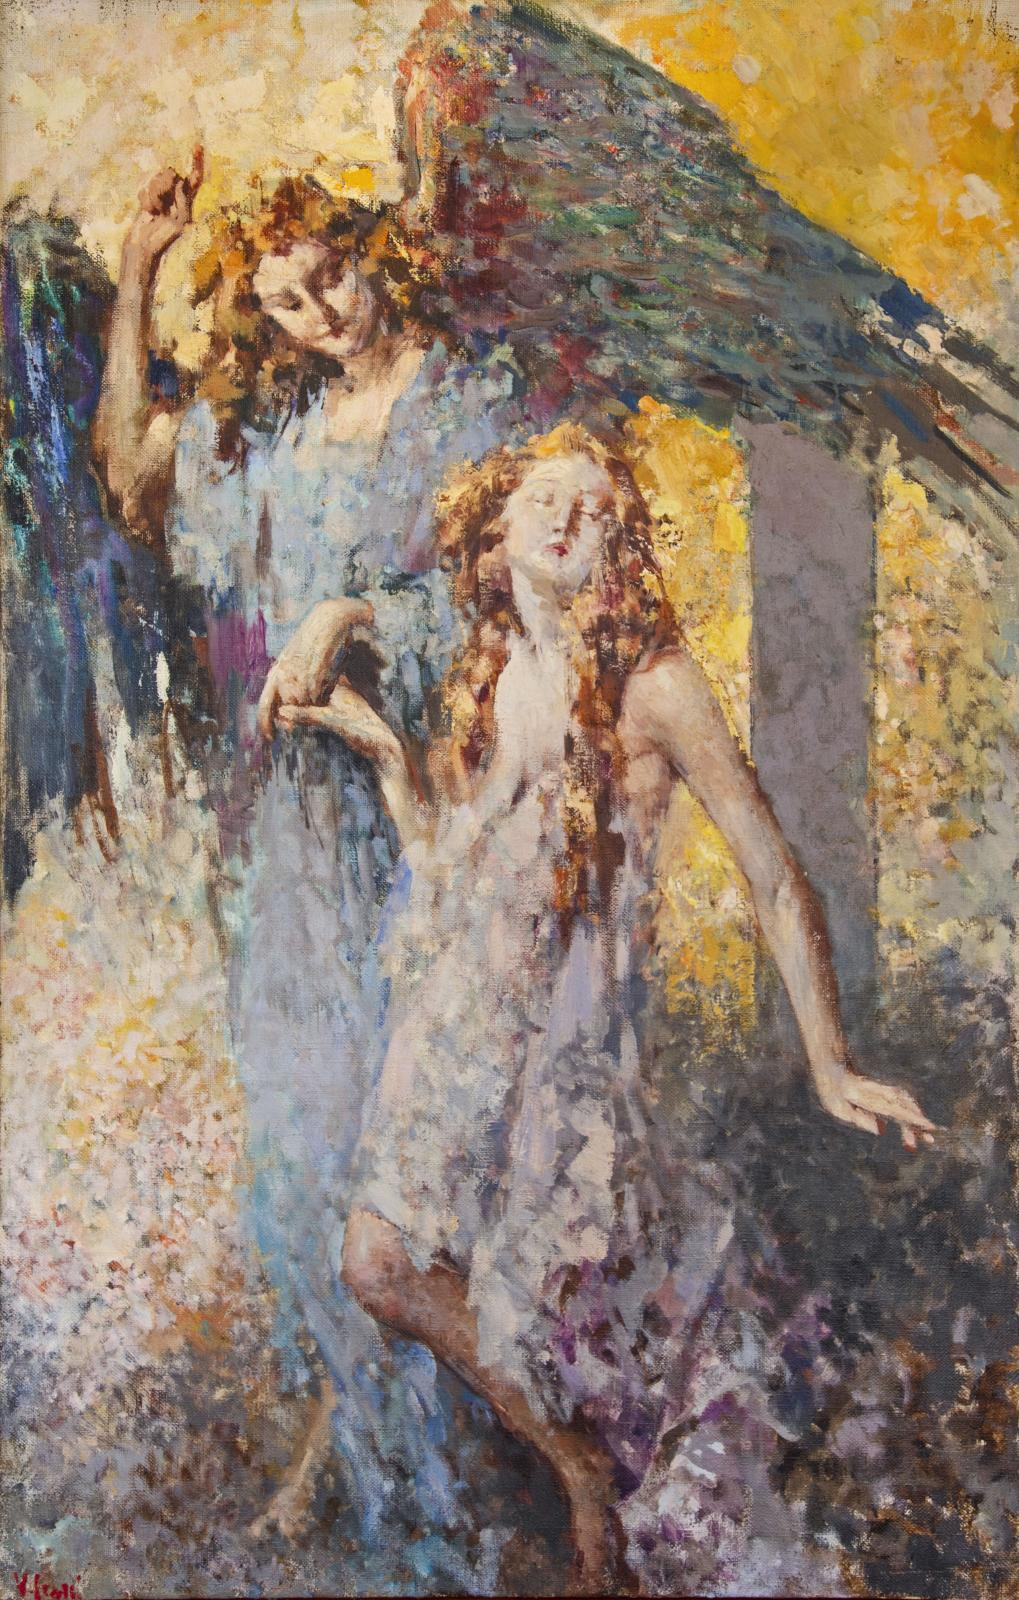 Impressionistic painting of an angel leading a young woman upward